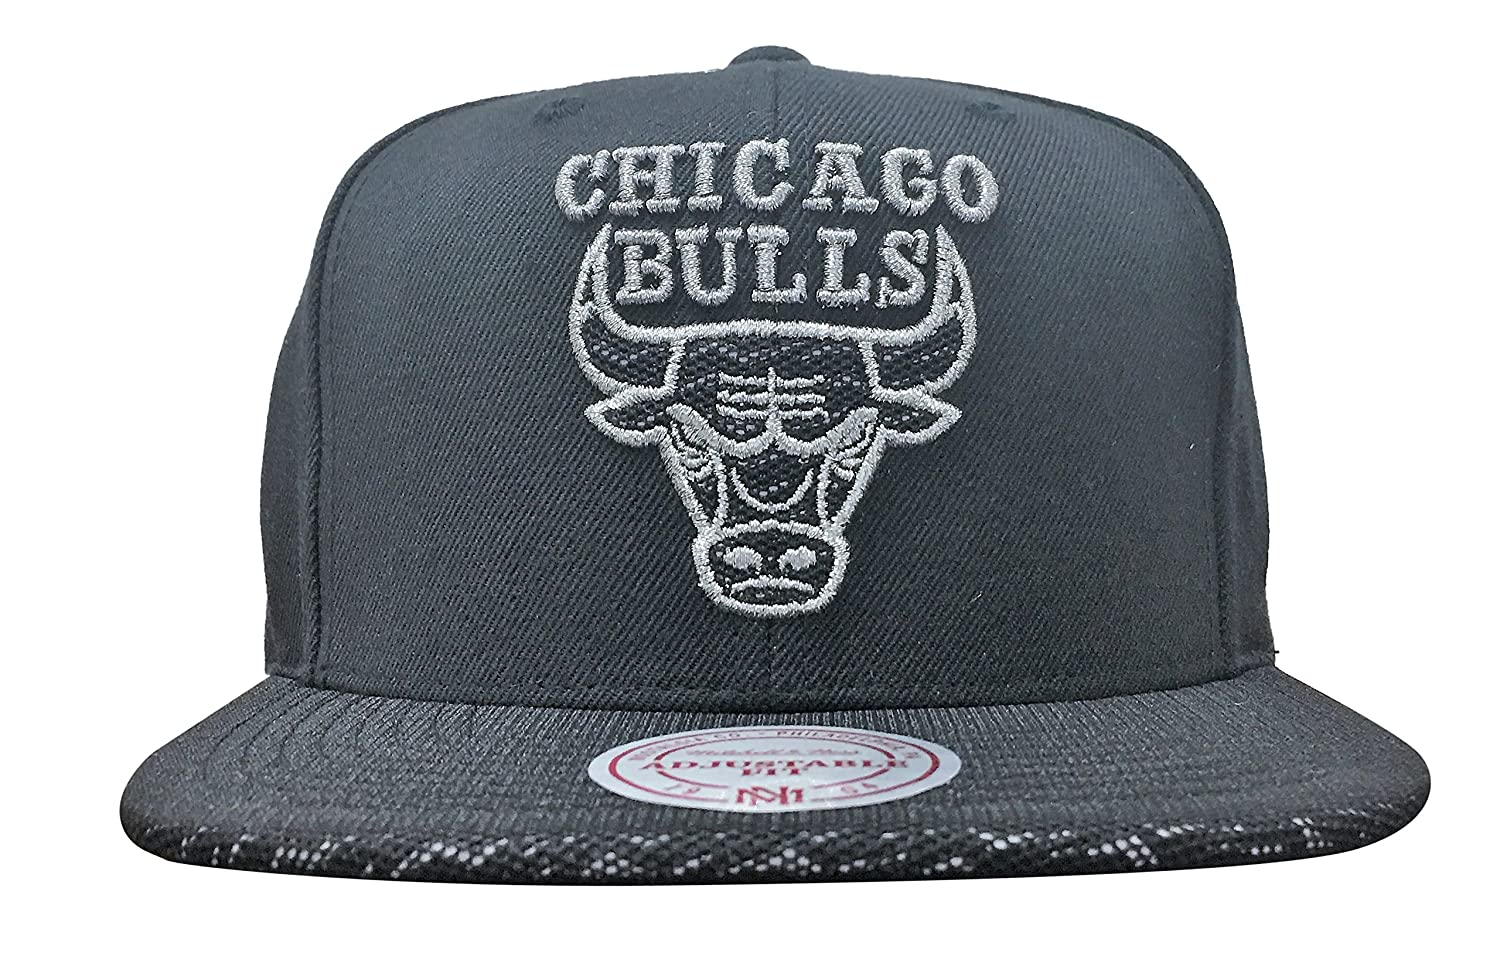 official photos 89fd8 e8c49 Mitchell   Ness Chicago Bulls 3M Mesh 2.0 Snapback Black Silver at Amazon  Men s Clothing store